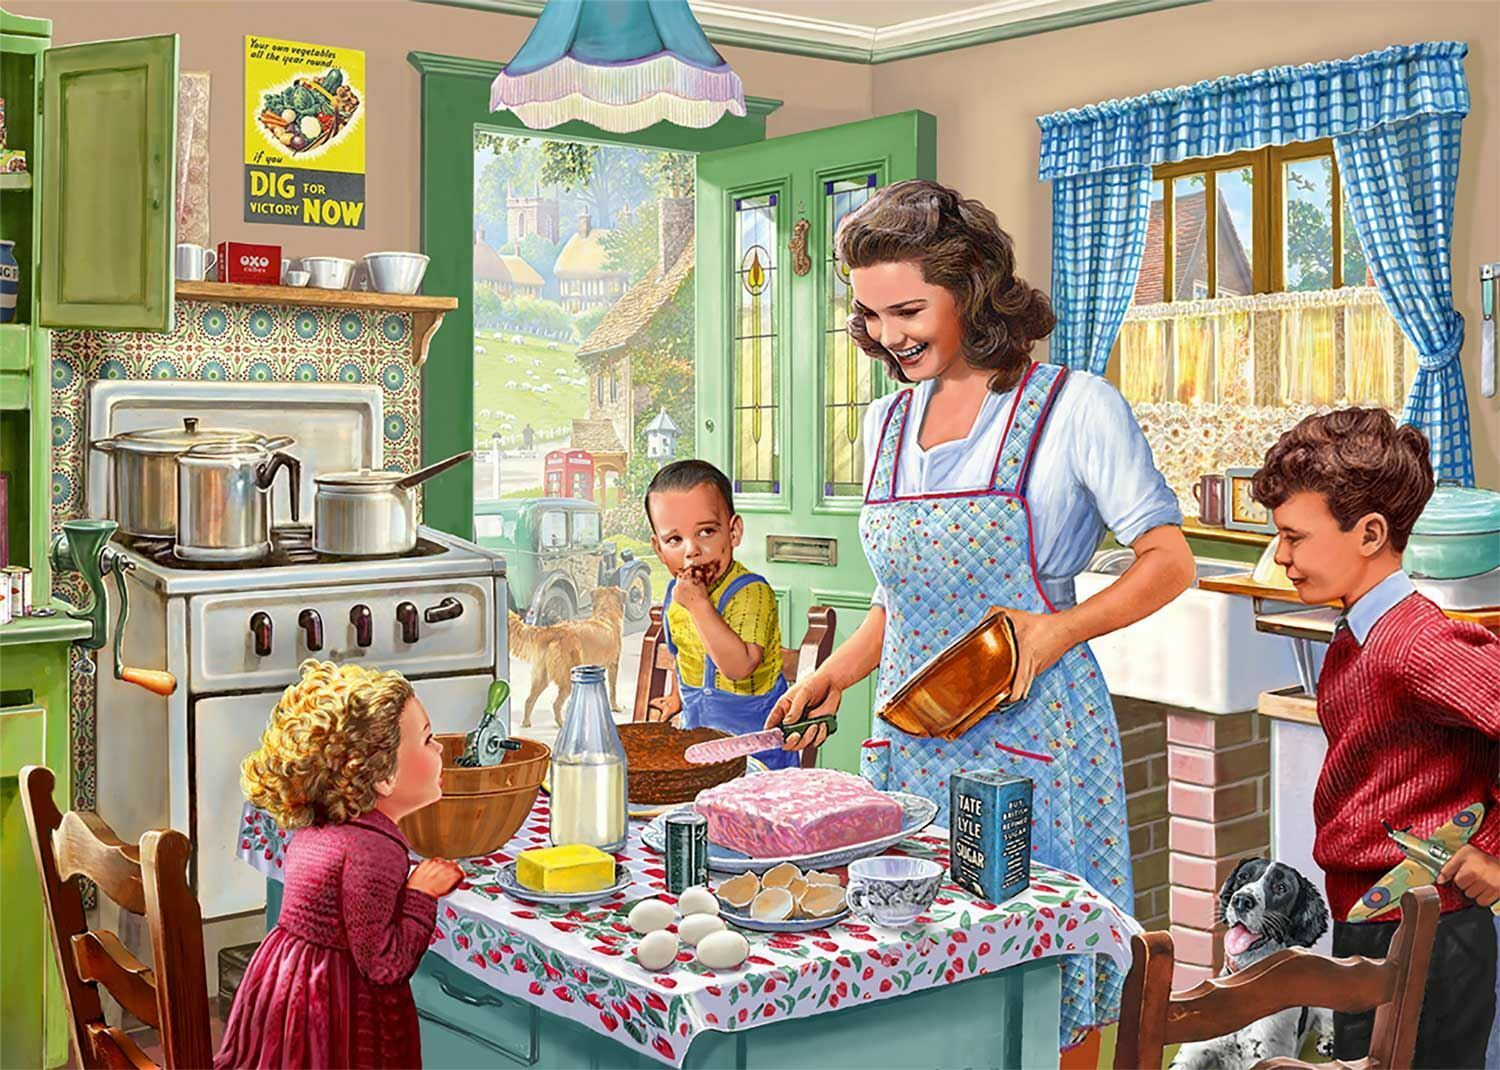 kitchen-from-1940s